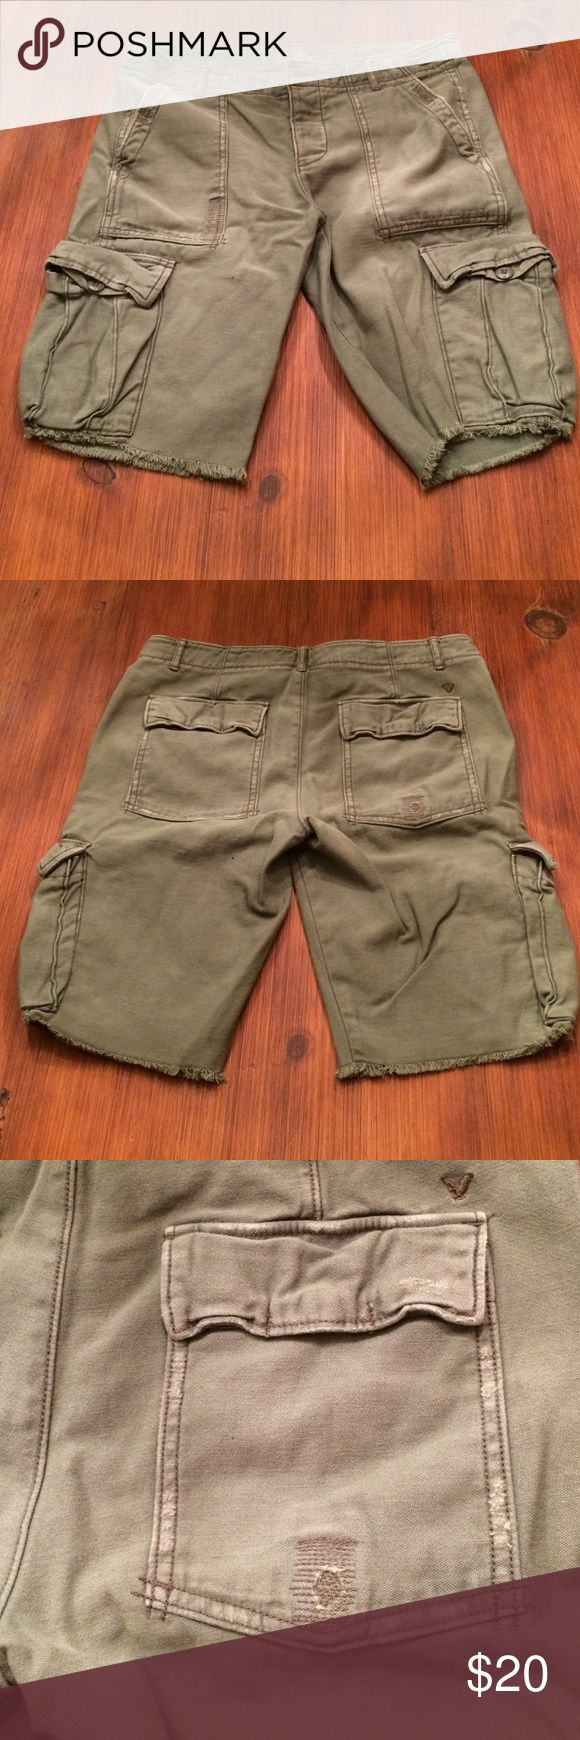 Military style cargo shorts American Eagle cargo shorts. Size 4. Stitching on some of the pockets made to look distressed. In great shape, no holes or stains. Knee length American Eagle Outfitters Shorts Cargos